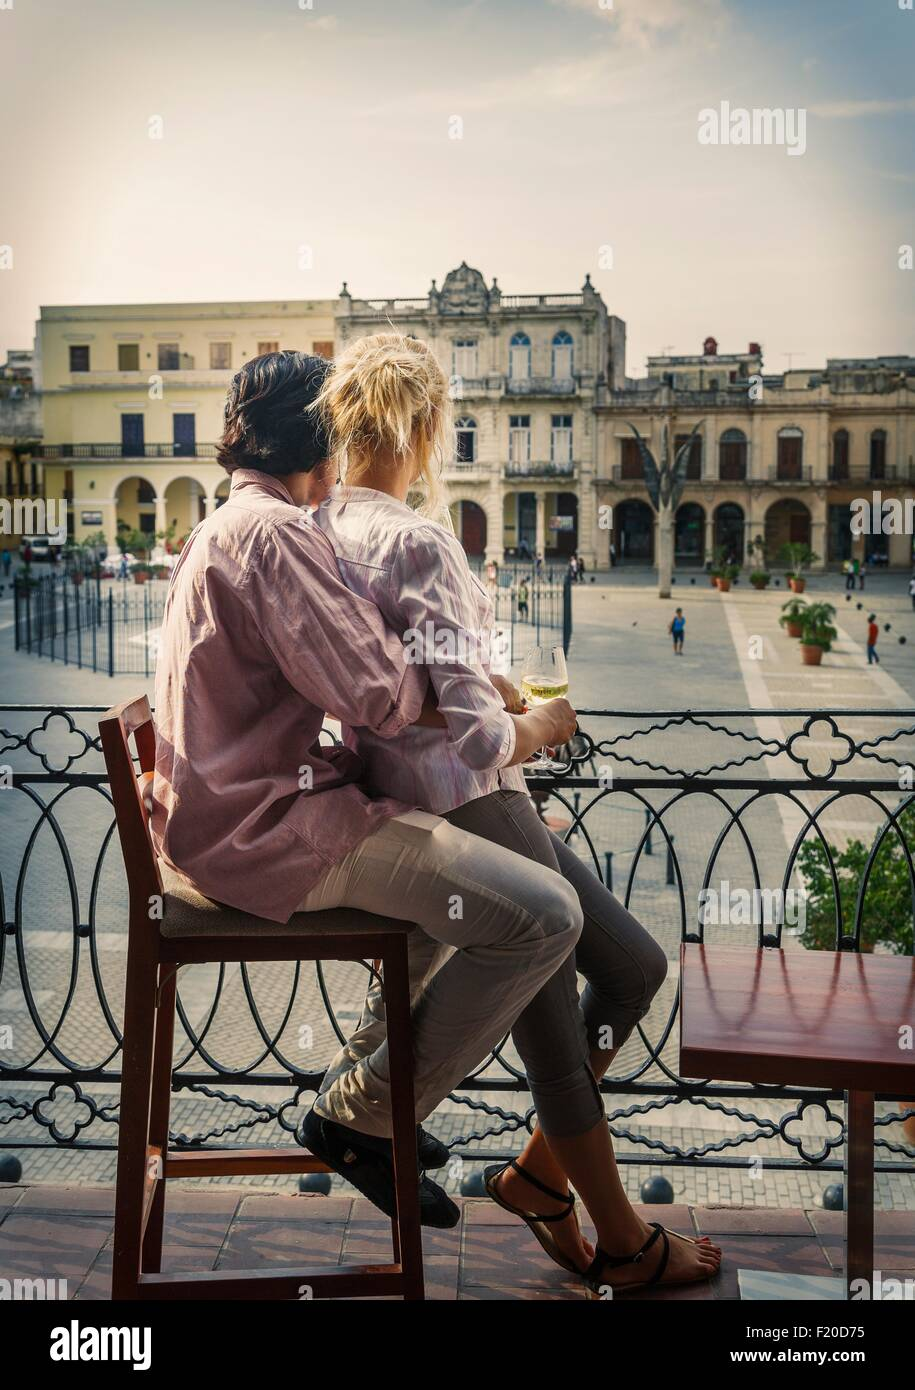 Romantic young couple looking out from restaurant balcony in Plaza Vieja, Havana, Cuba - Stock Image